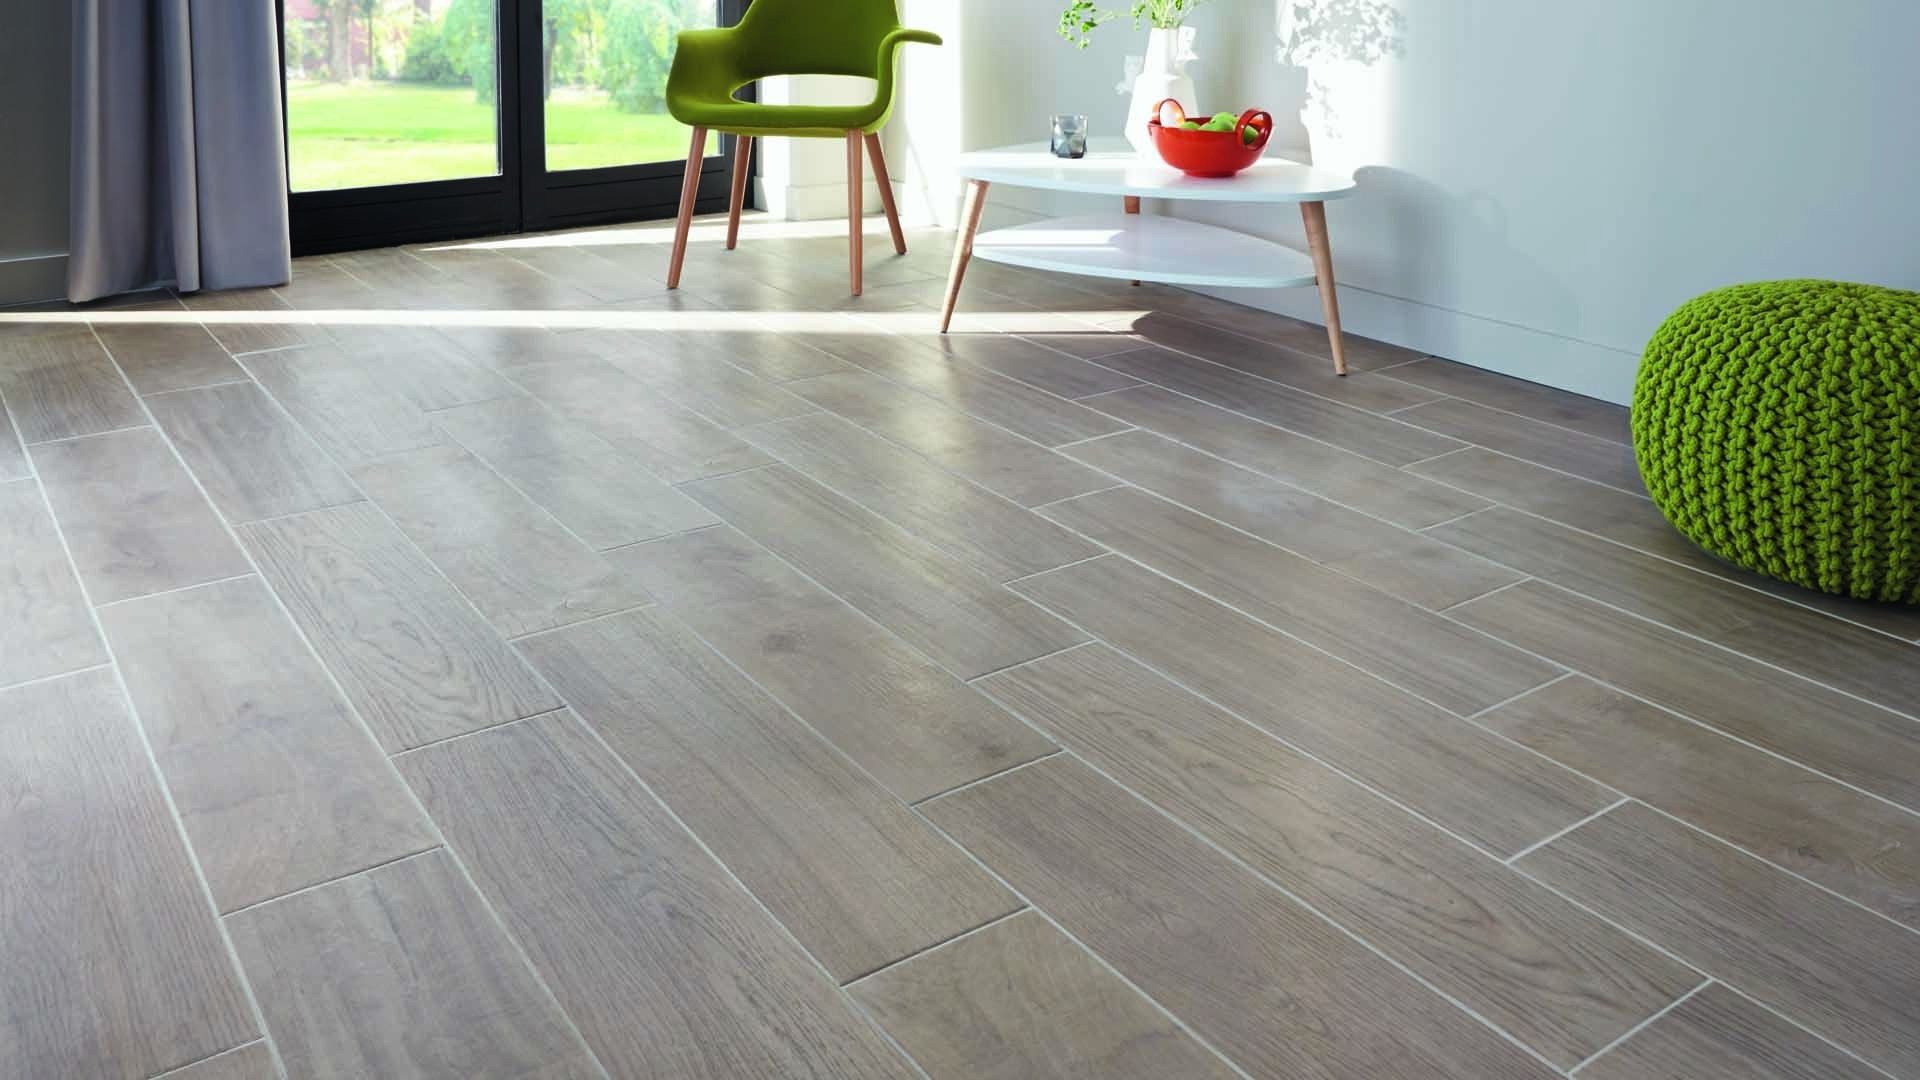 Carrelage I Feel Wood Tan 20 80 Saint Maclou Carrelage Imitation Parquet Carrelage Imitation Bois Planchers Modernes